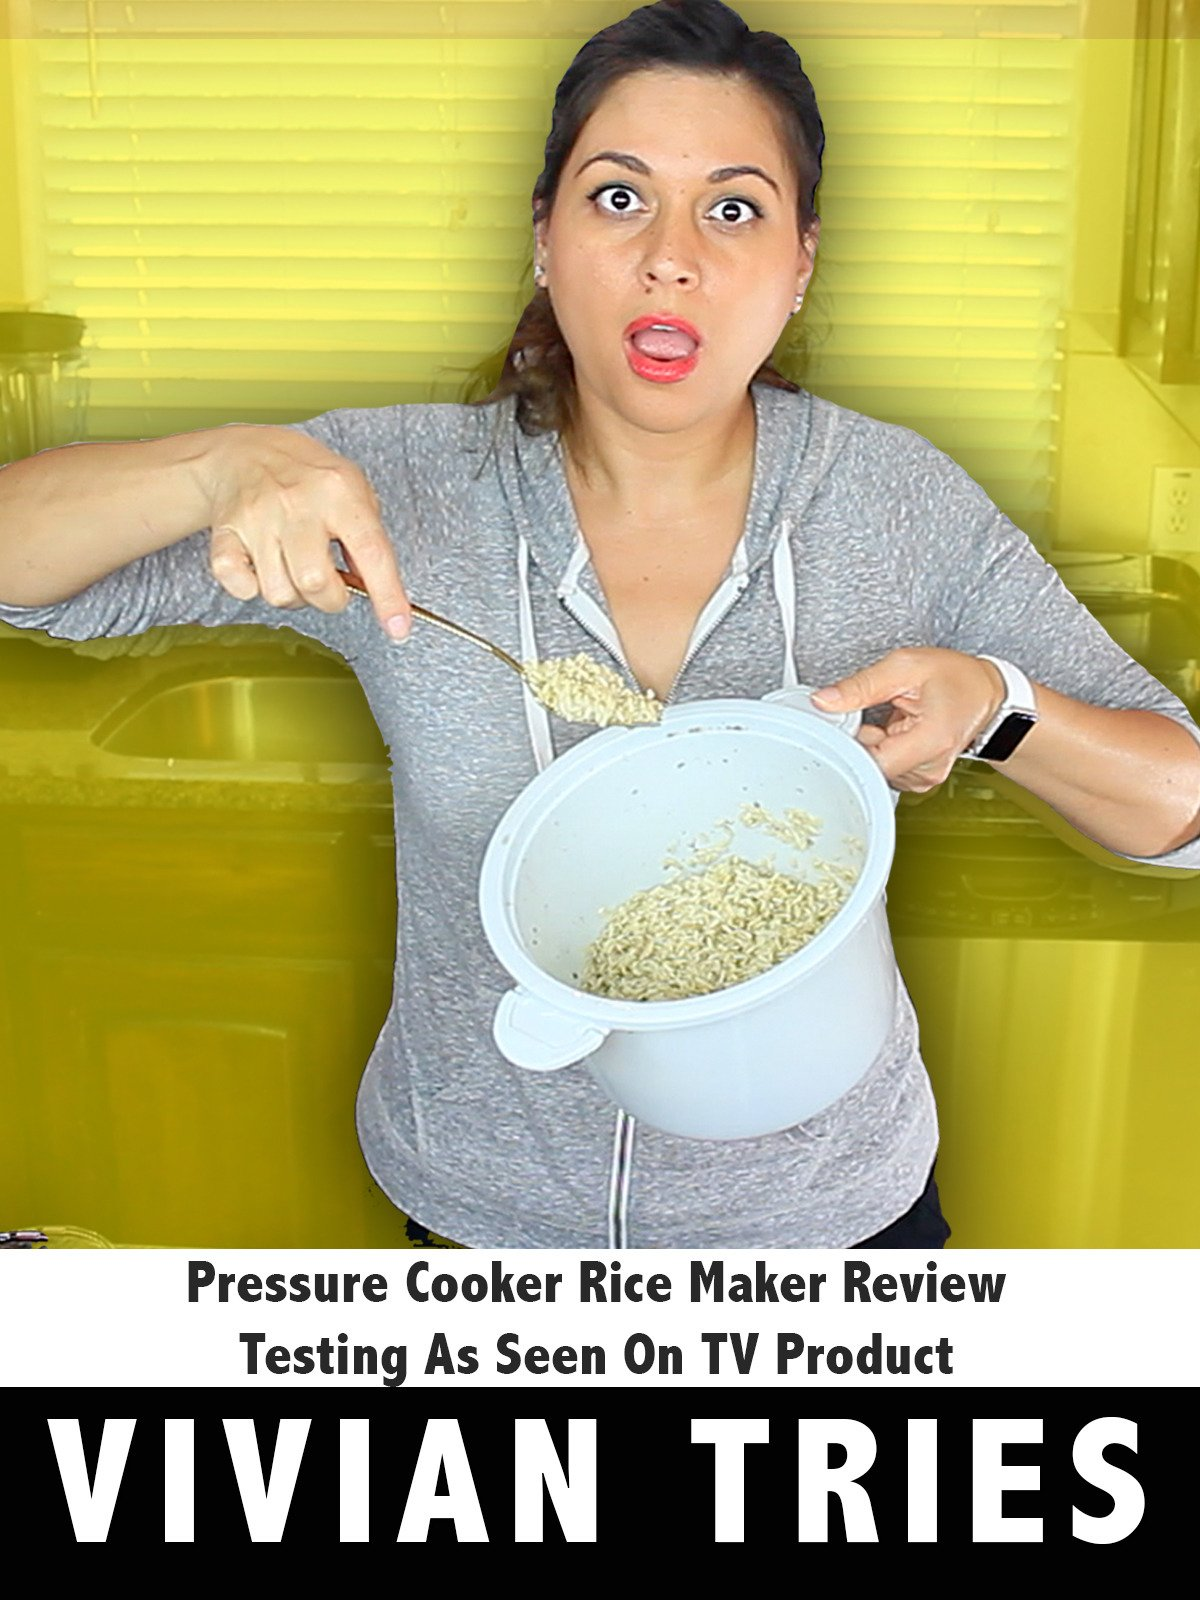 Review: Pressure Cooker Rice Maker Review Testing As Seen On TV Products